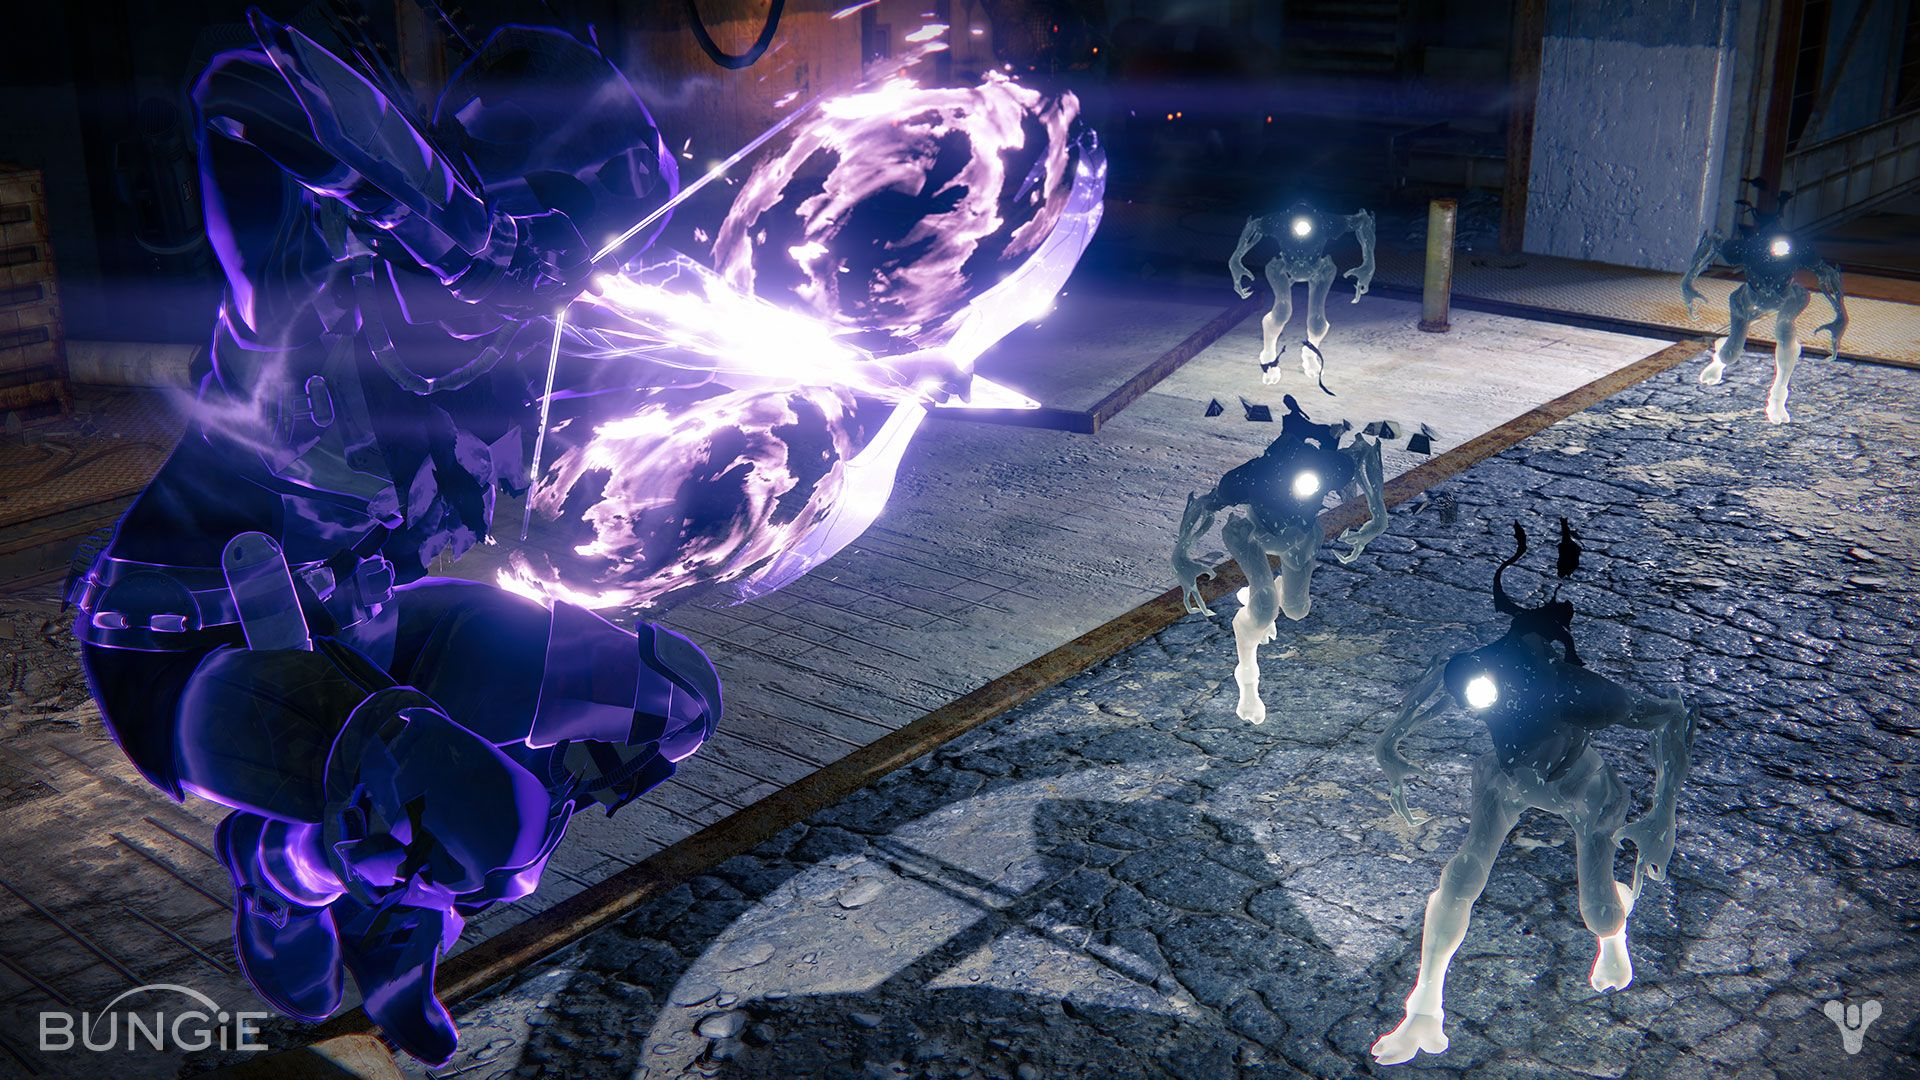 Destiny's New Missions Are Way Better Than The Old Ones